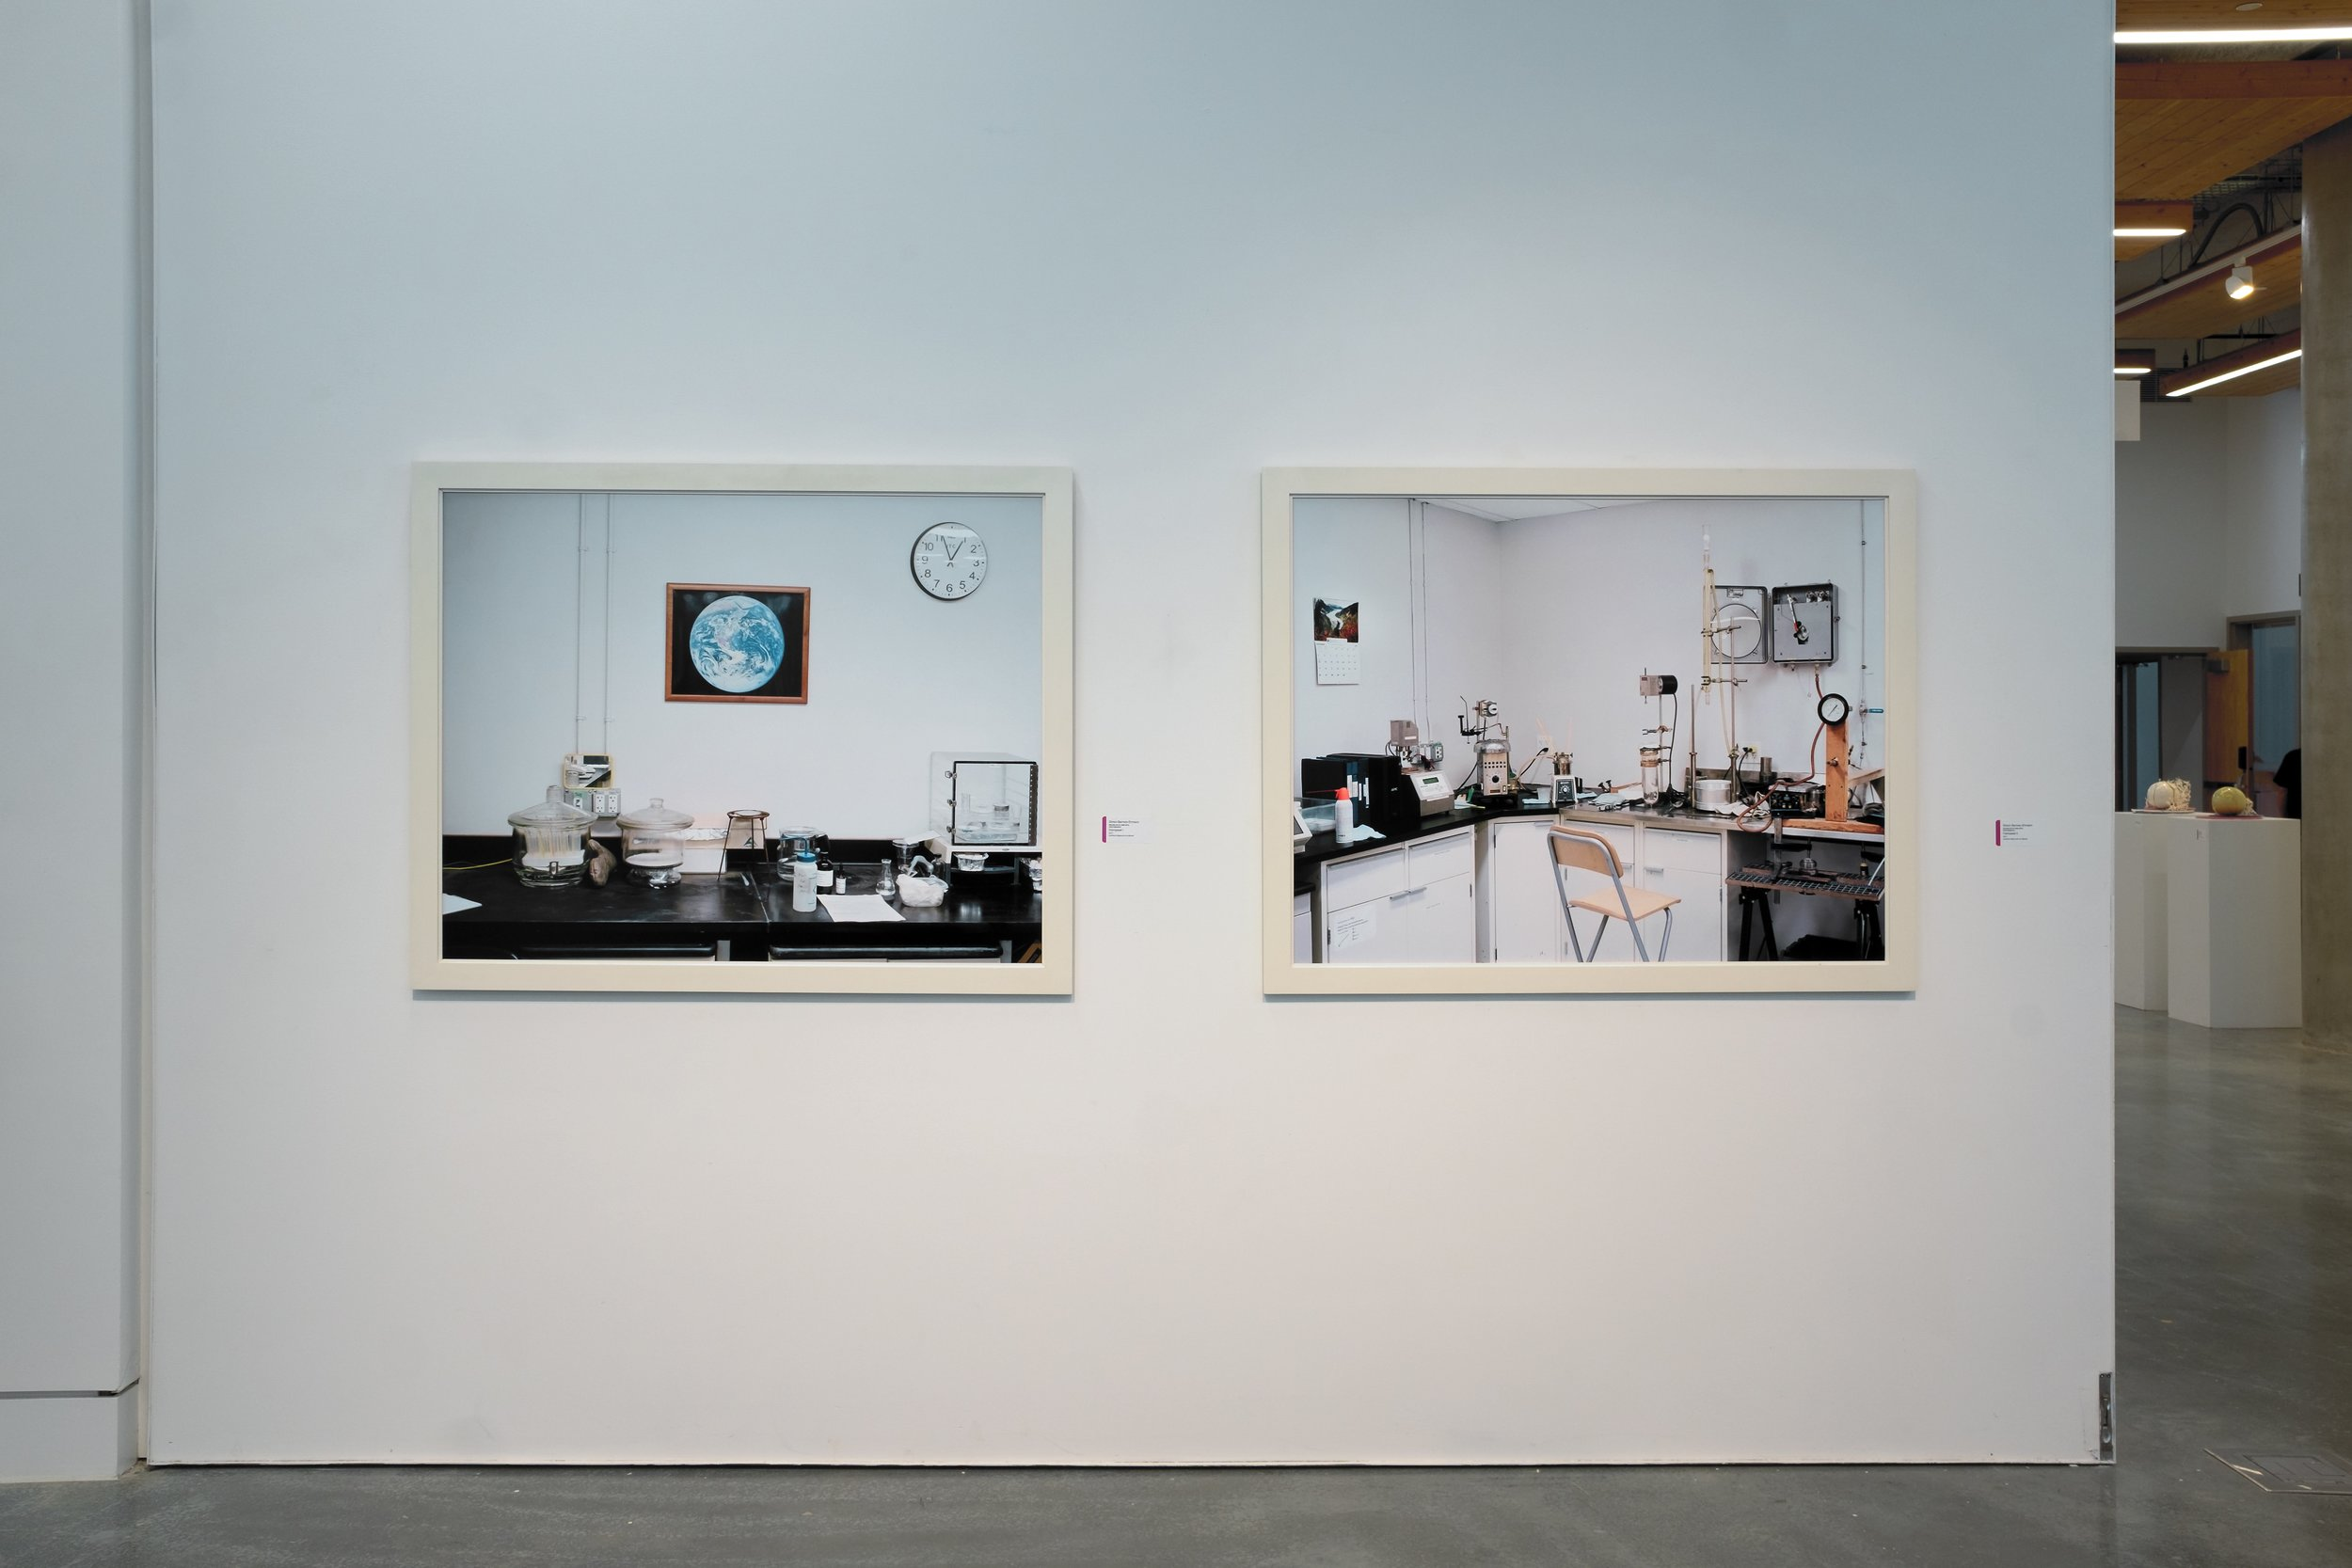 Installation View from ECUAD Grad Show,  Palimpsest #1 (left) and Palimpsest #2 (right),  Vancouver, 2018